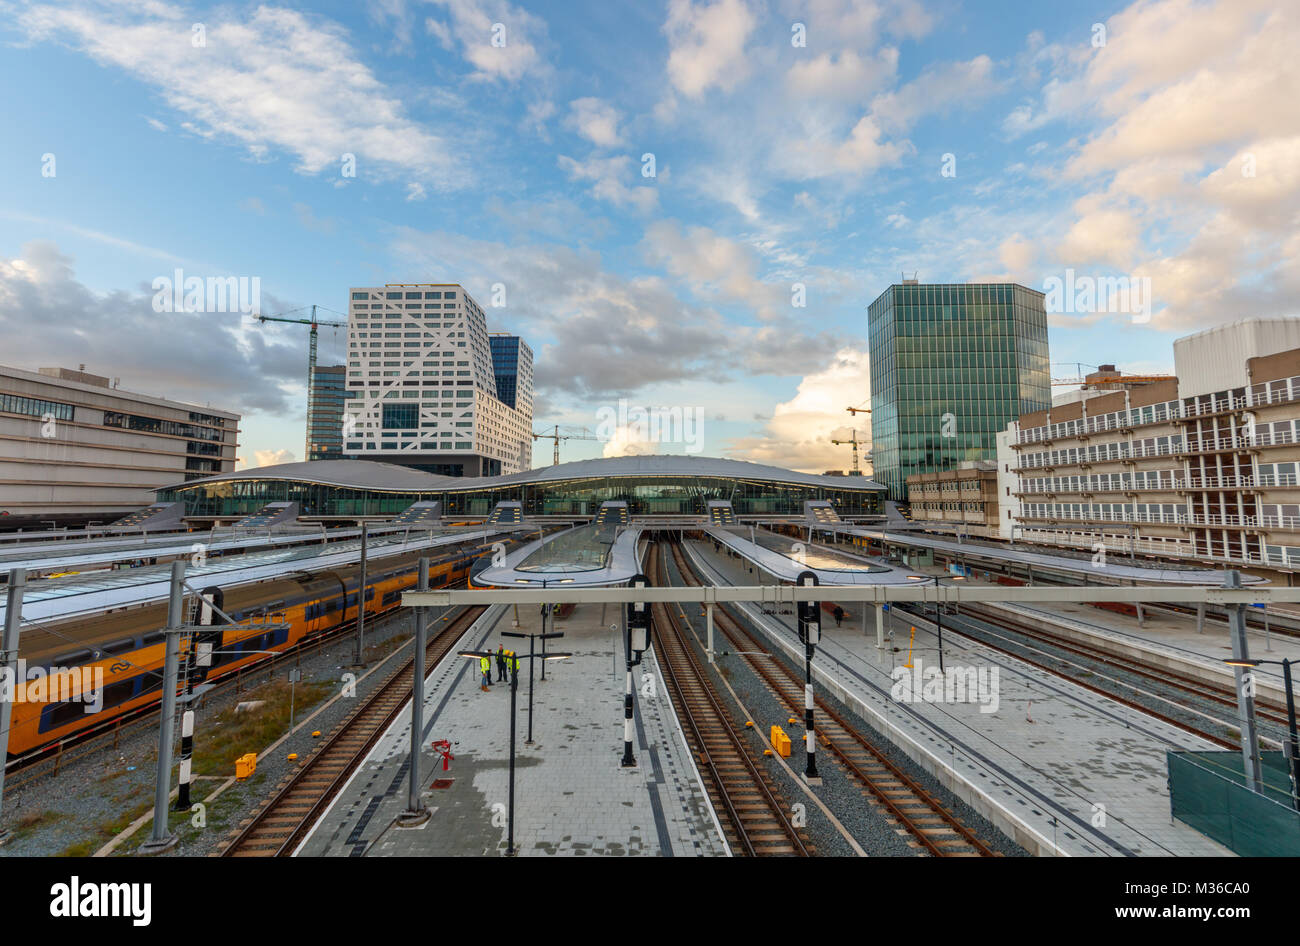 The City Hall and Utrecht Centraal railway station with platforms, trains and railways during sunset. Utrecht, The - Stock Image